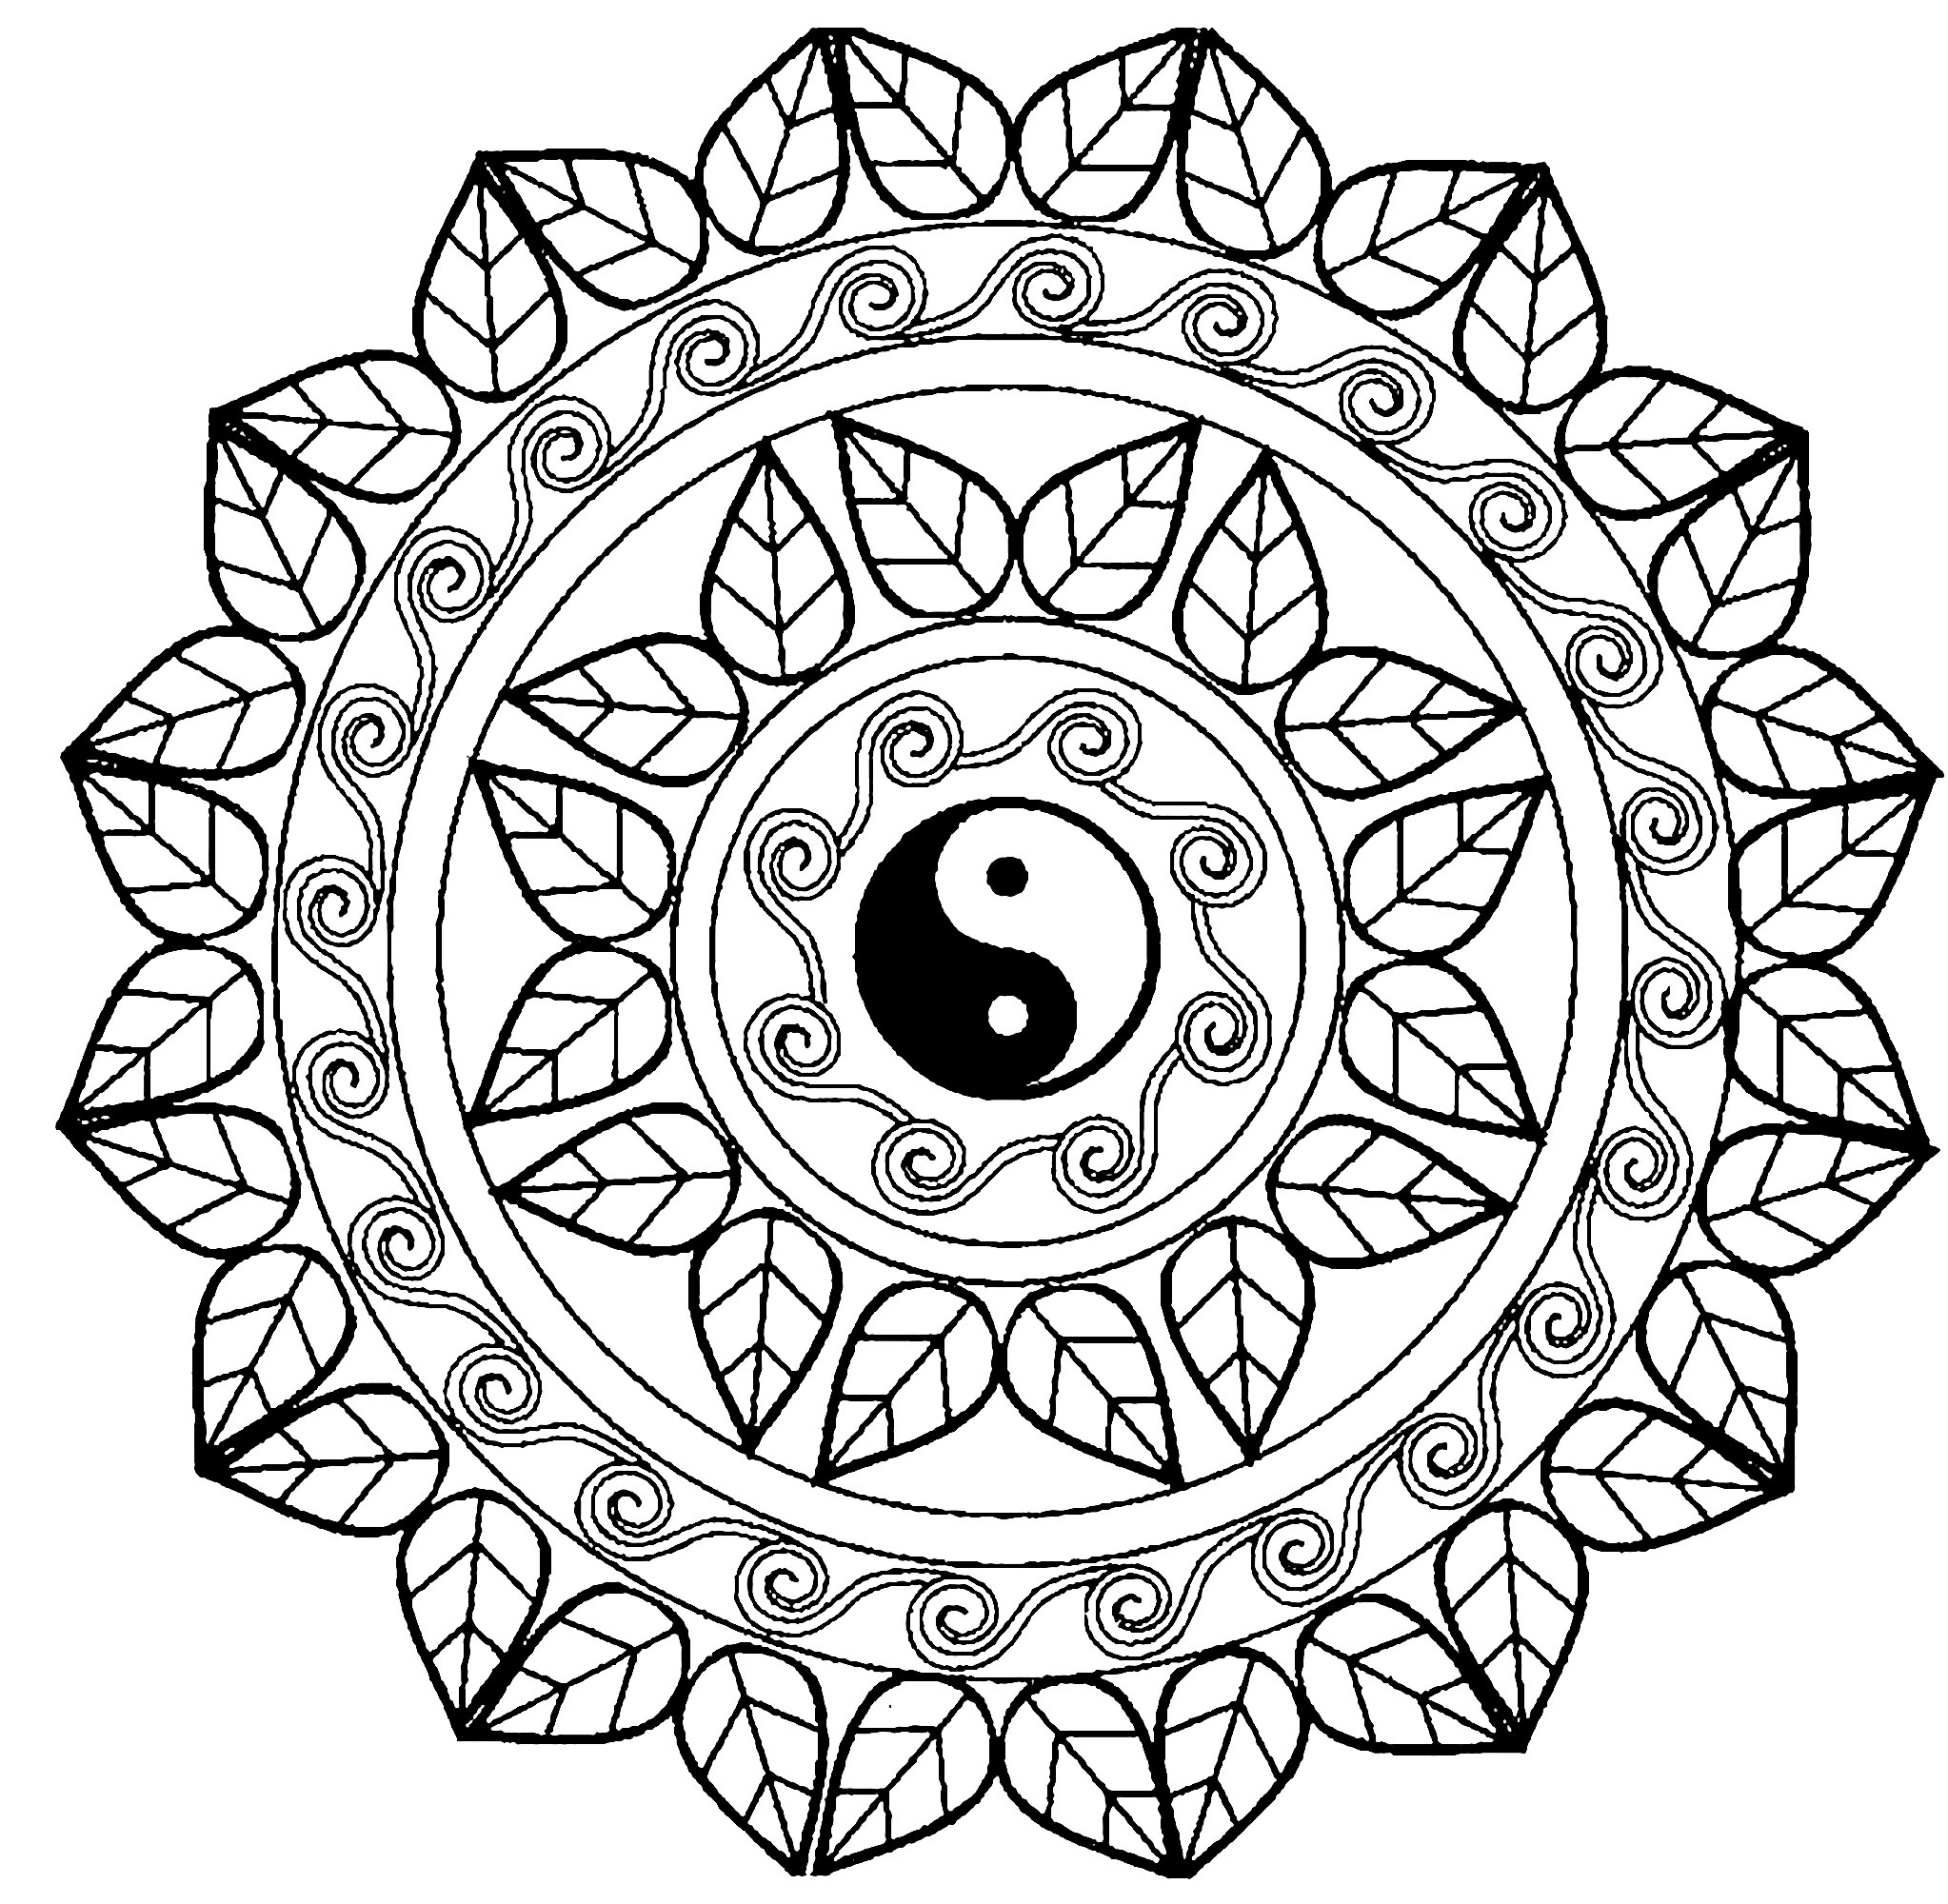 Mandala yin yang Malas Adult Coloring Pages